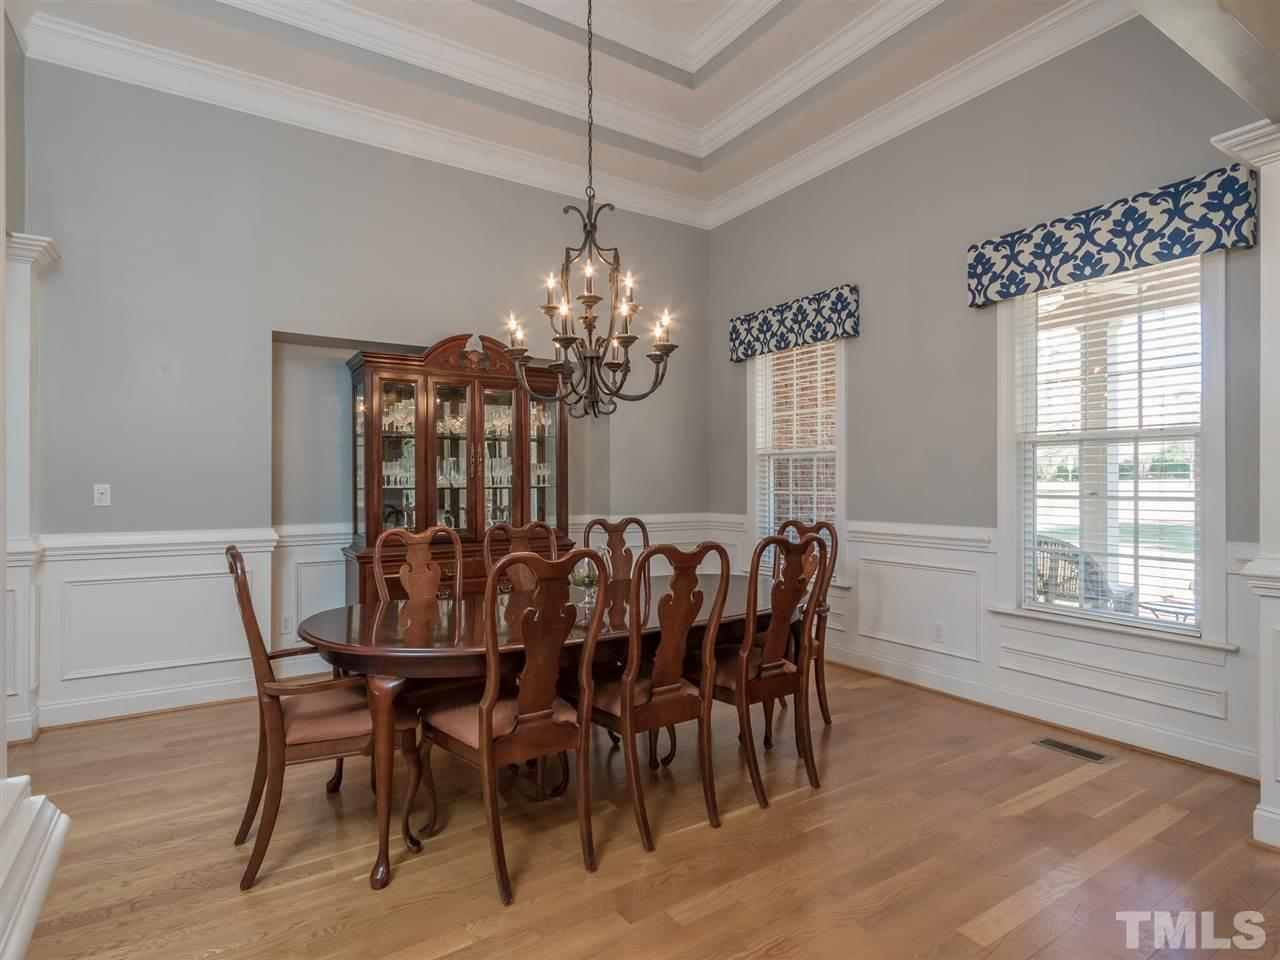 Dramatic 14' ceilings and a full wall of bowed windows enhance this awesome gathering room.